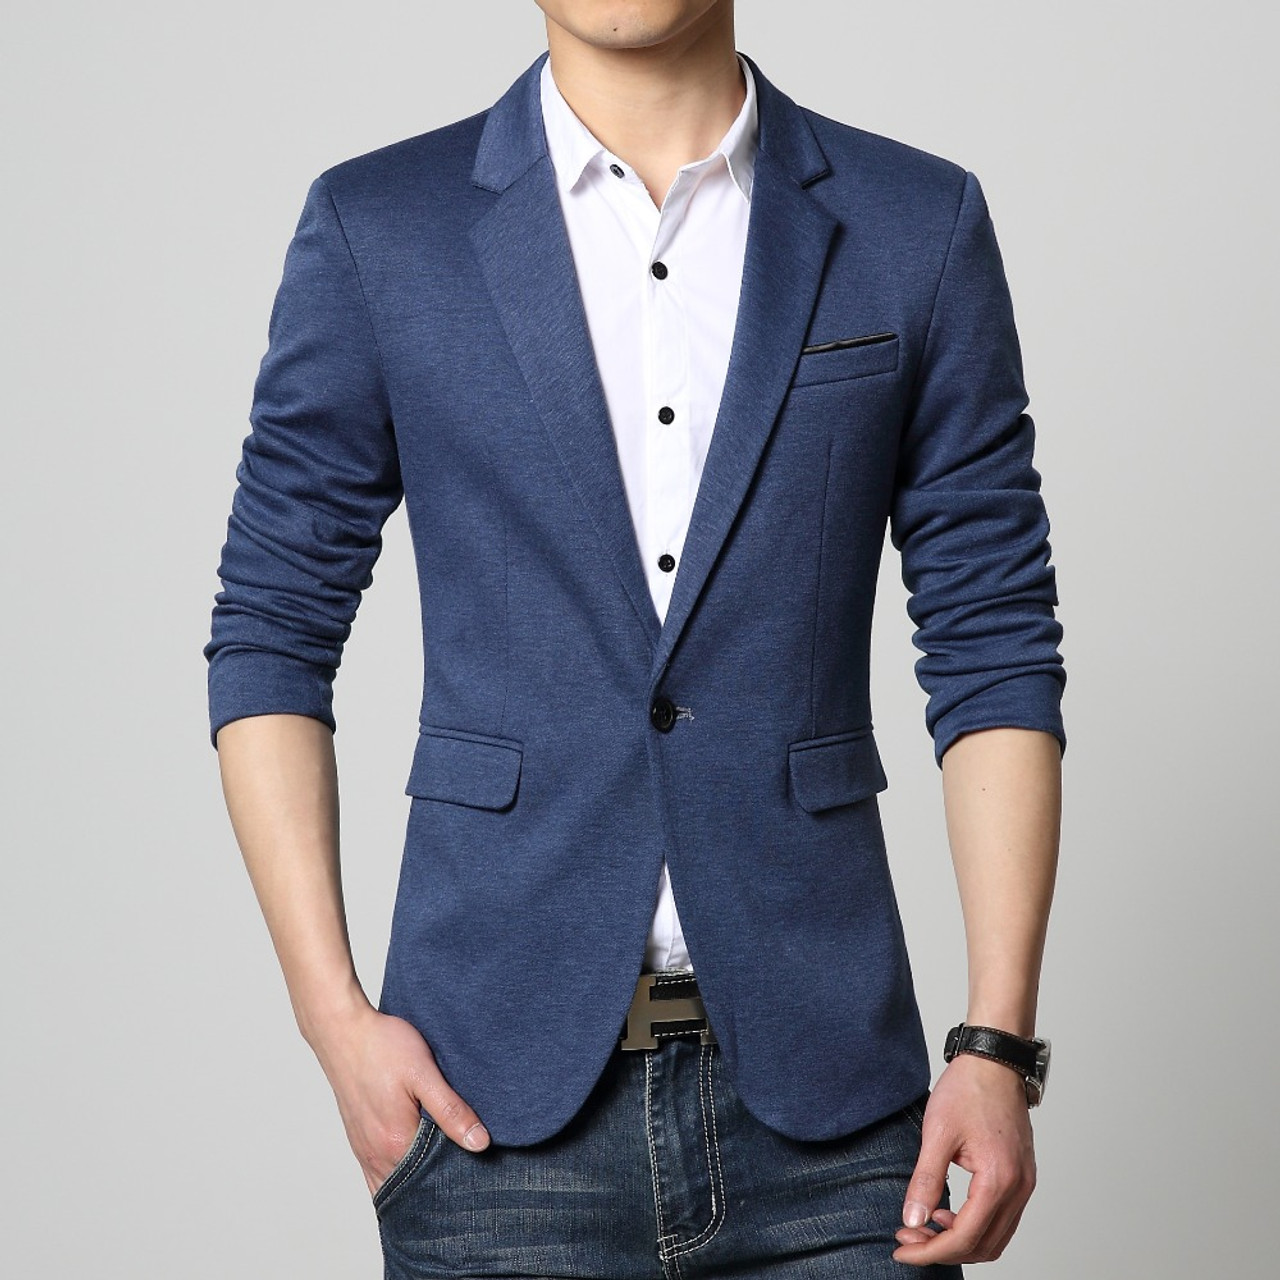 6f19e951c8 ... 2018 new arrival blazer men cotton linen soild 4 color men suit plus  size men blazer ...